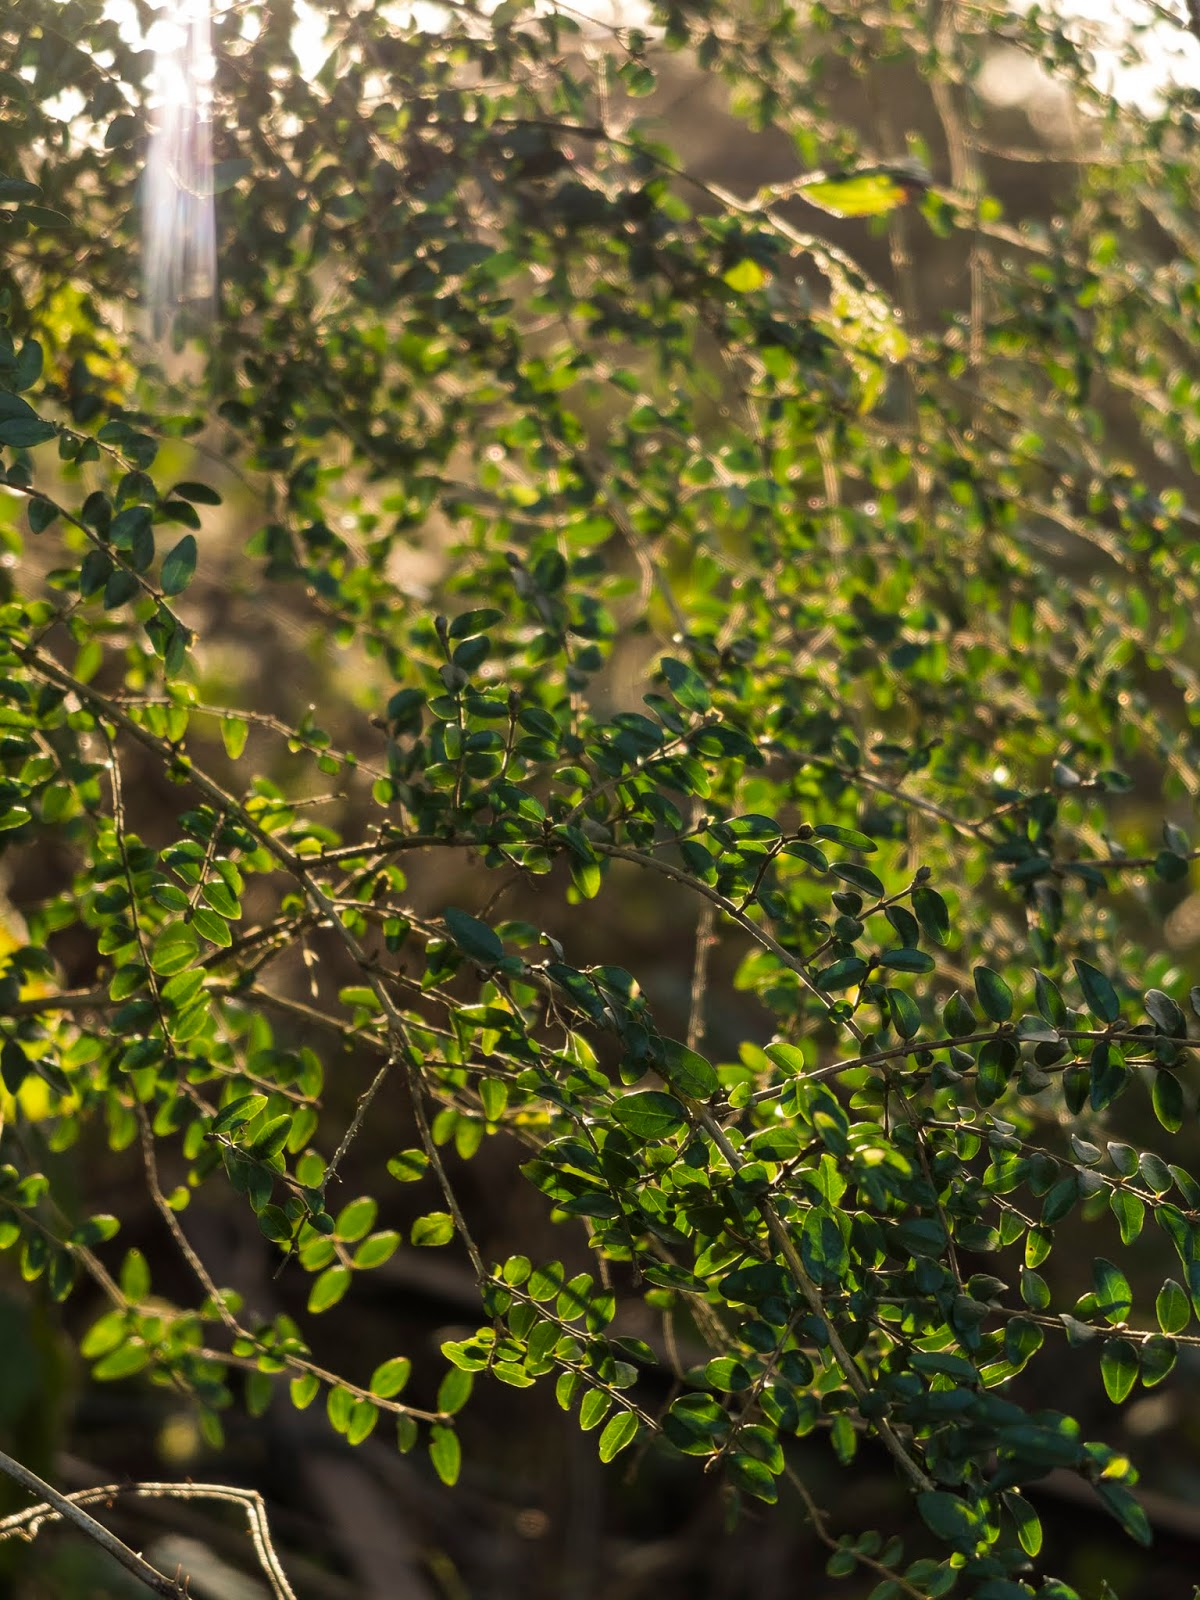 Sunset light shining through tiny ever green leaves in January.